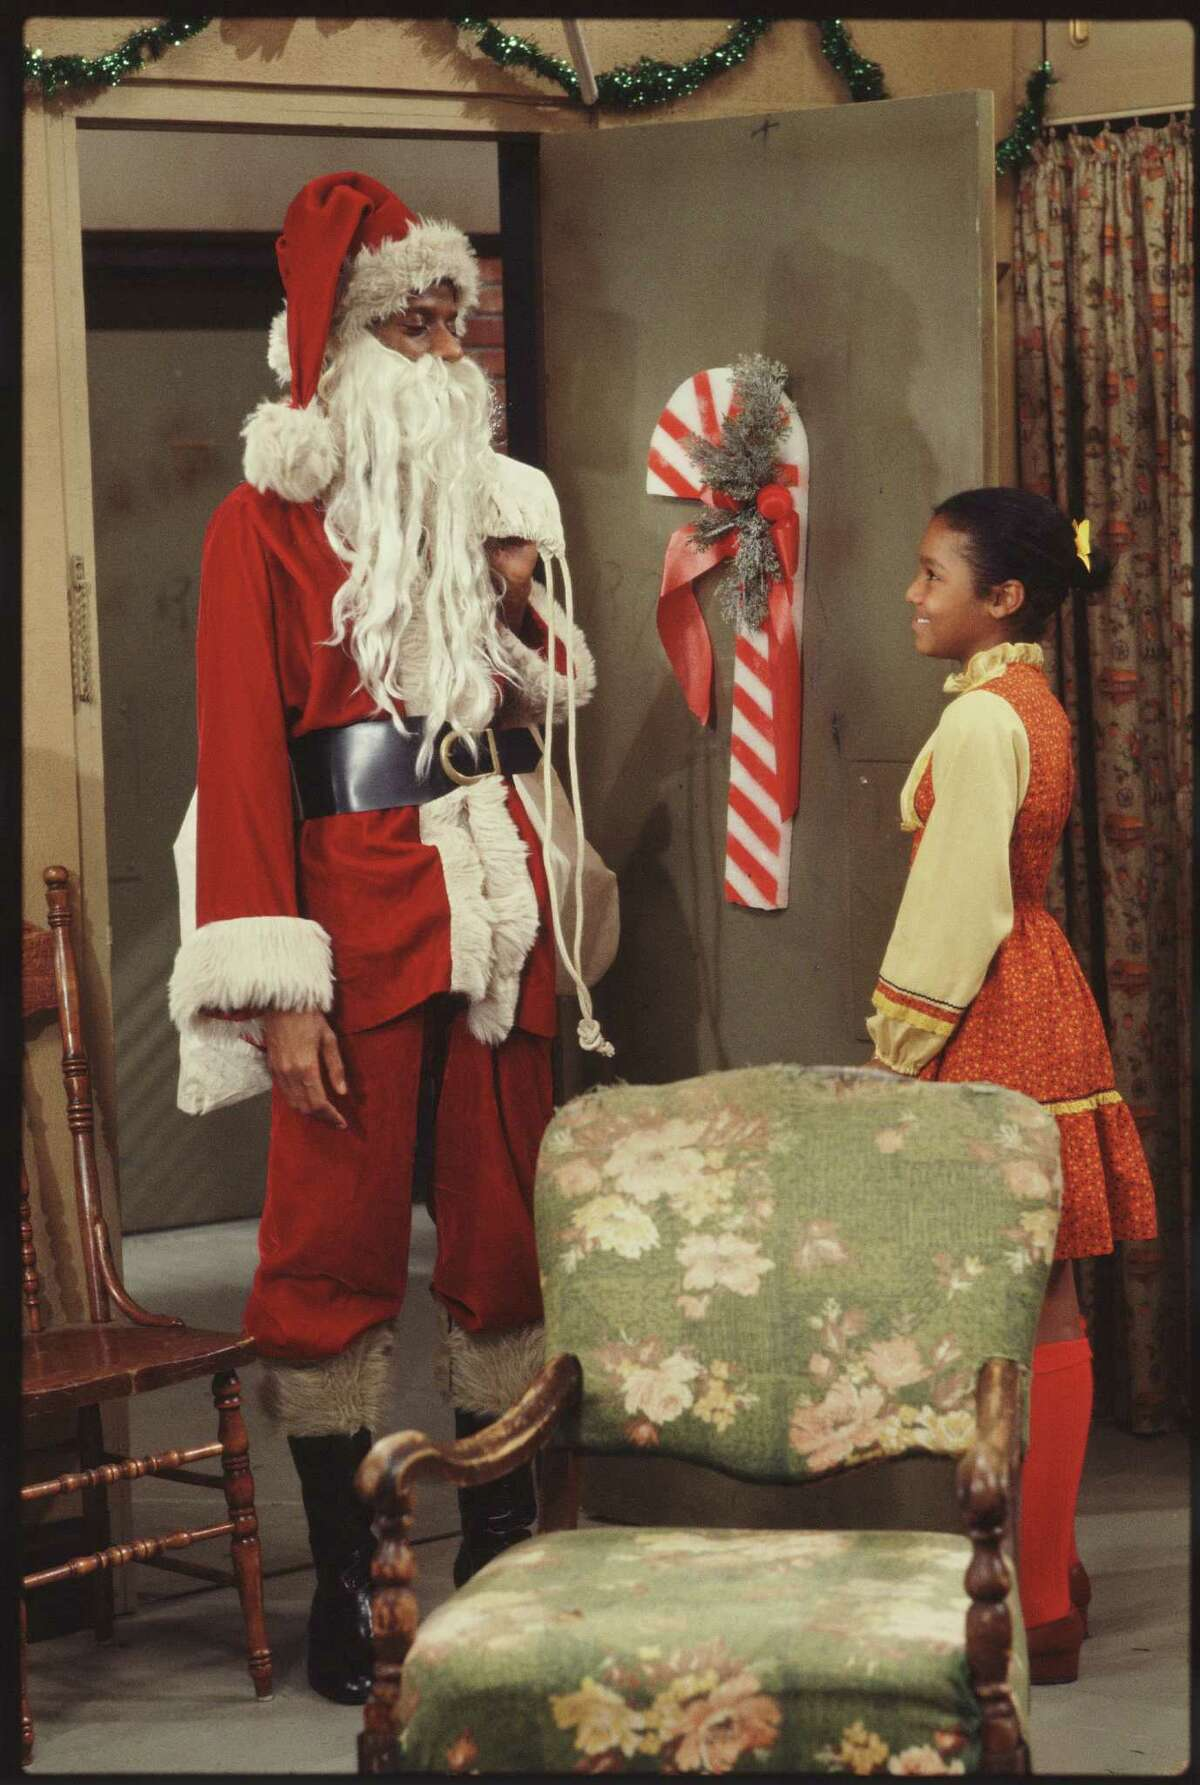 American child actress Janet Jackson (right) opens the door for actor Jimmie Walker, dressed as Santa Claus, in a scene from the television show 'Good Times,' Los Angeles, California, 1977.